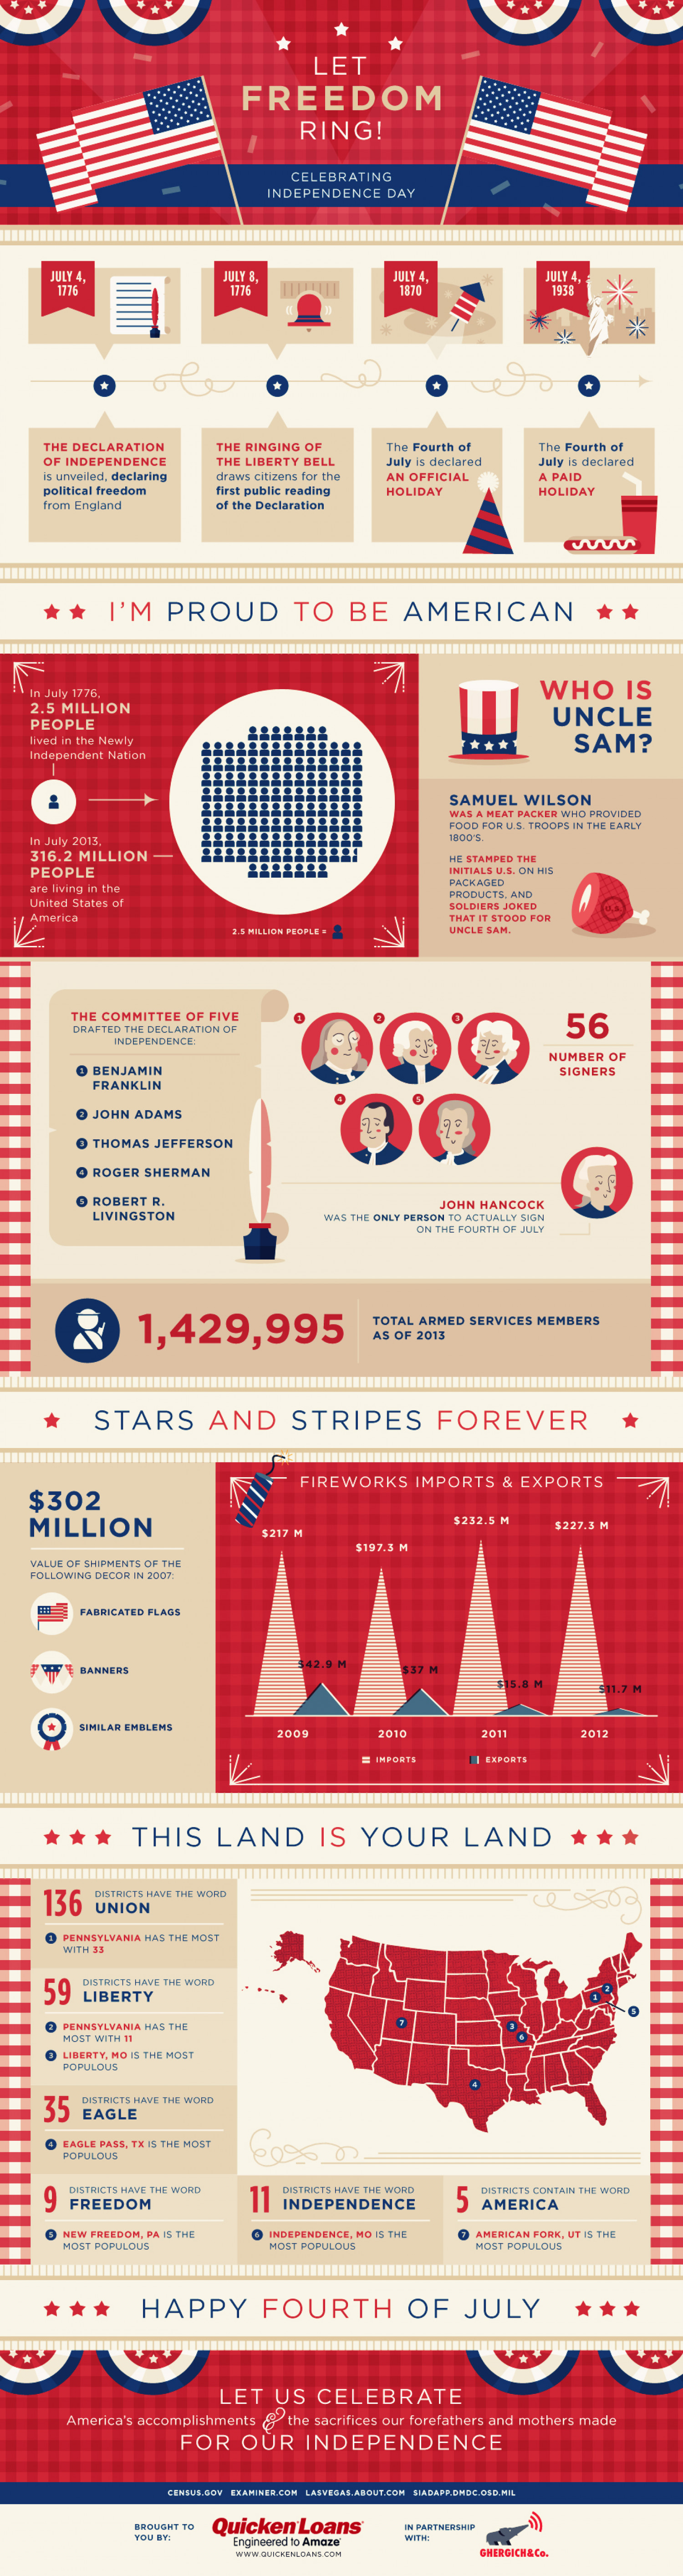 Let Freedom Ring! Infographic